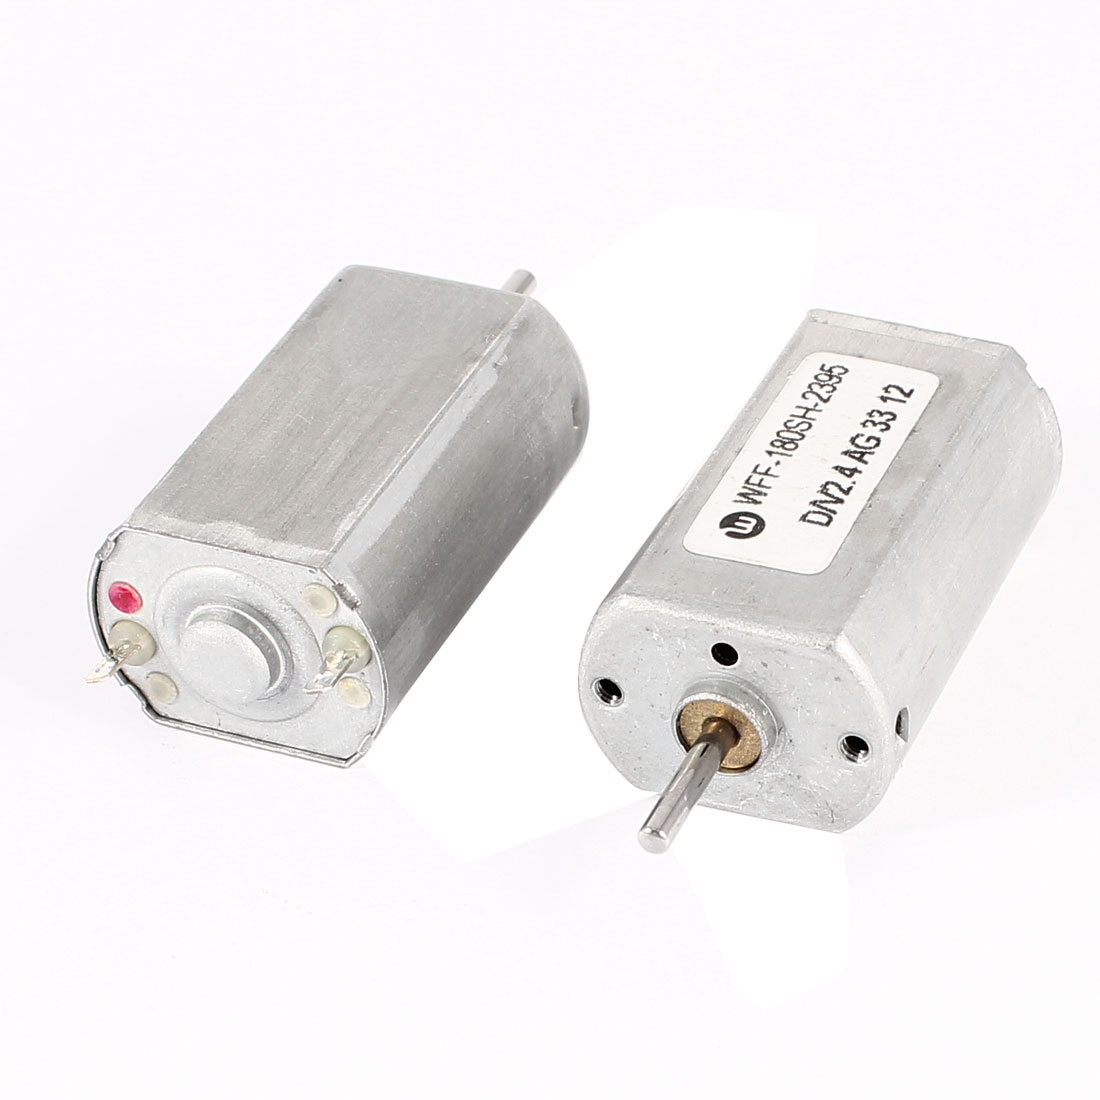 2 Pcs 6V 0.1A 11000RPM Powerful High Torque DC Gear Box Motor Replacement